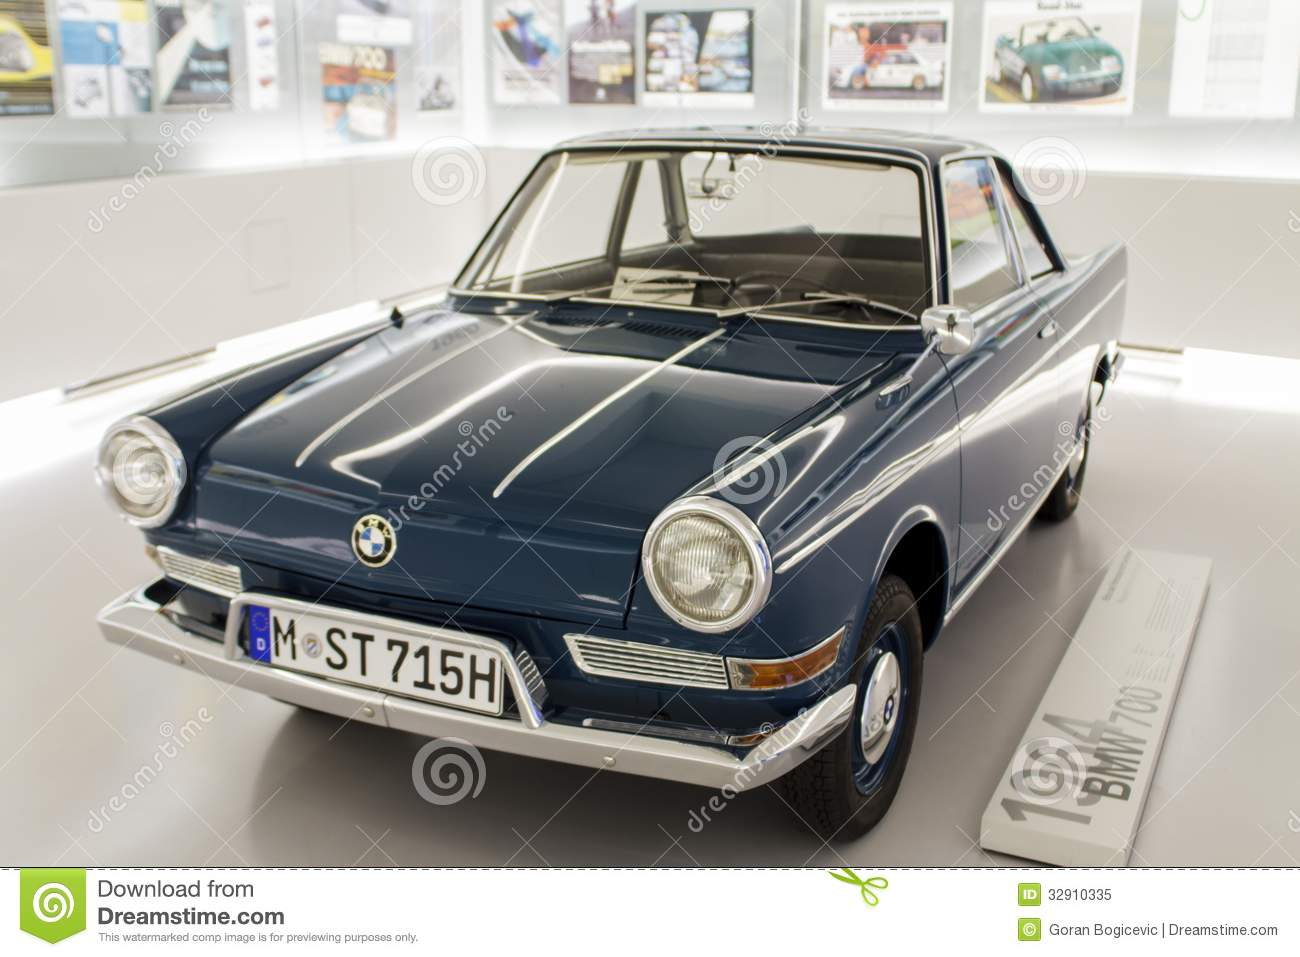 bmw 700 1964 dans le mus e de bmw munich image. Black Bedroom Furniture Sets. Home Design Ideas